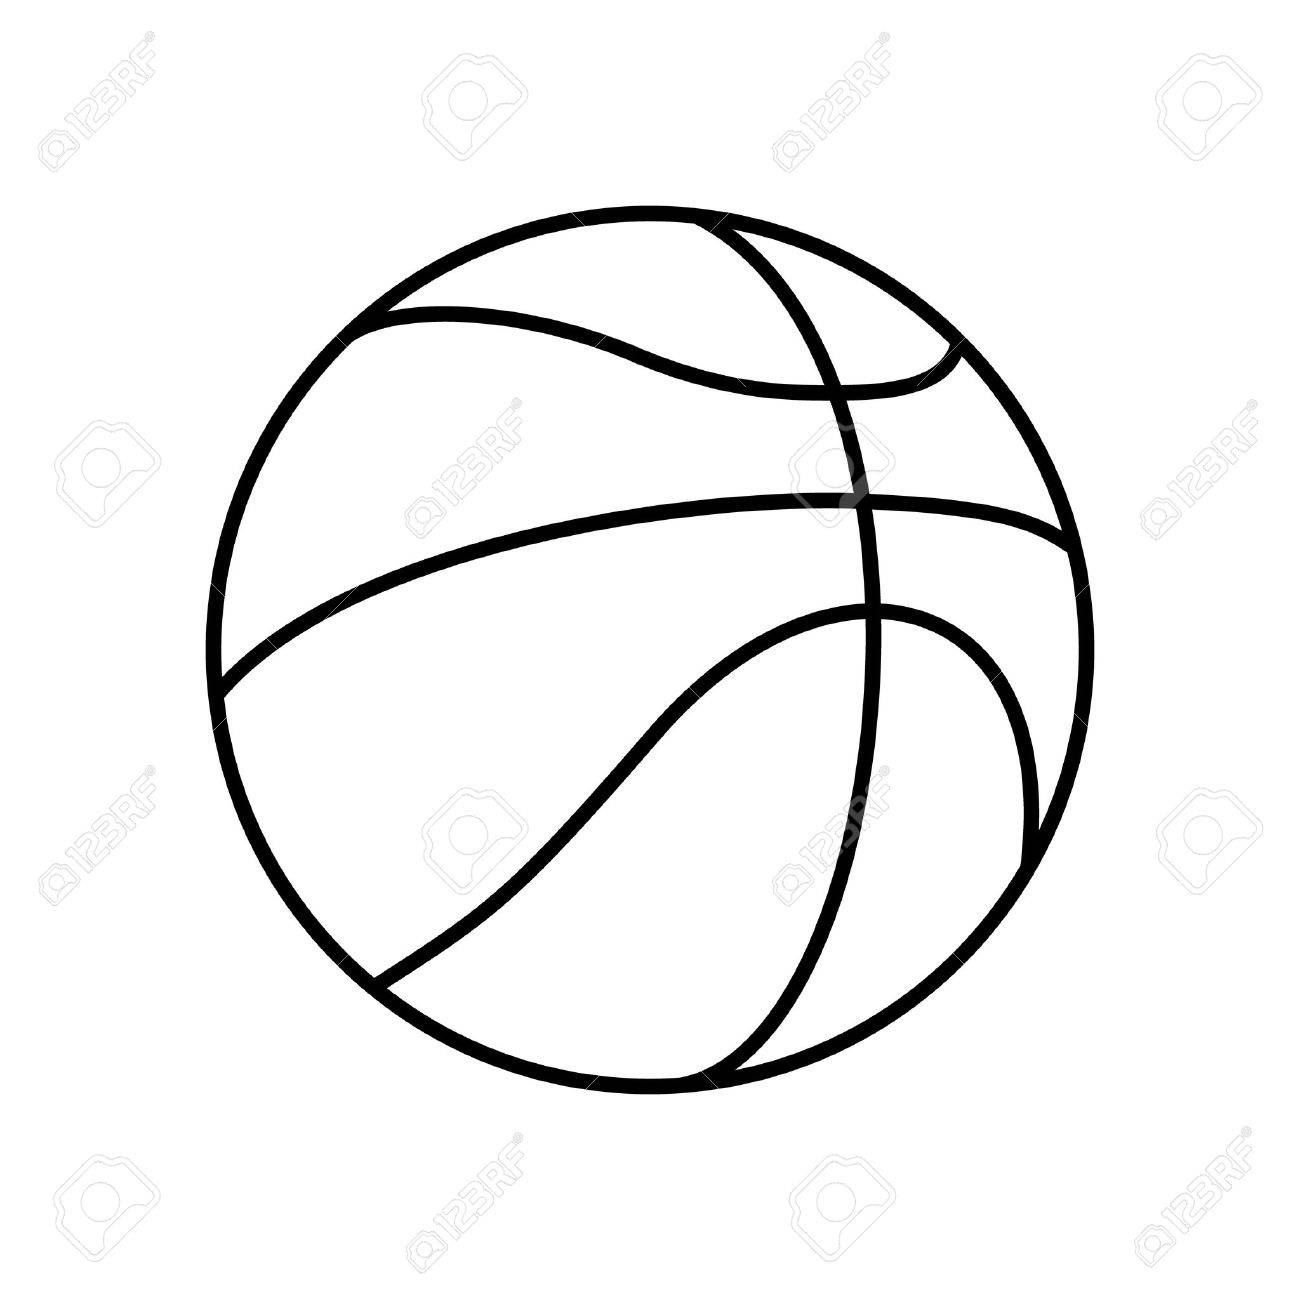 Black And White Basketball Ball Outline Vector Icon Isolated Royalty